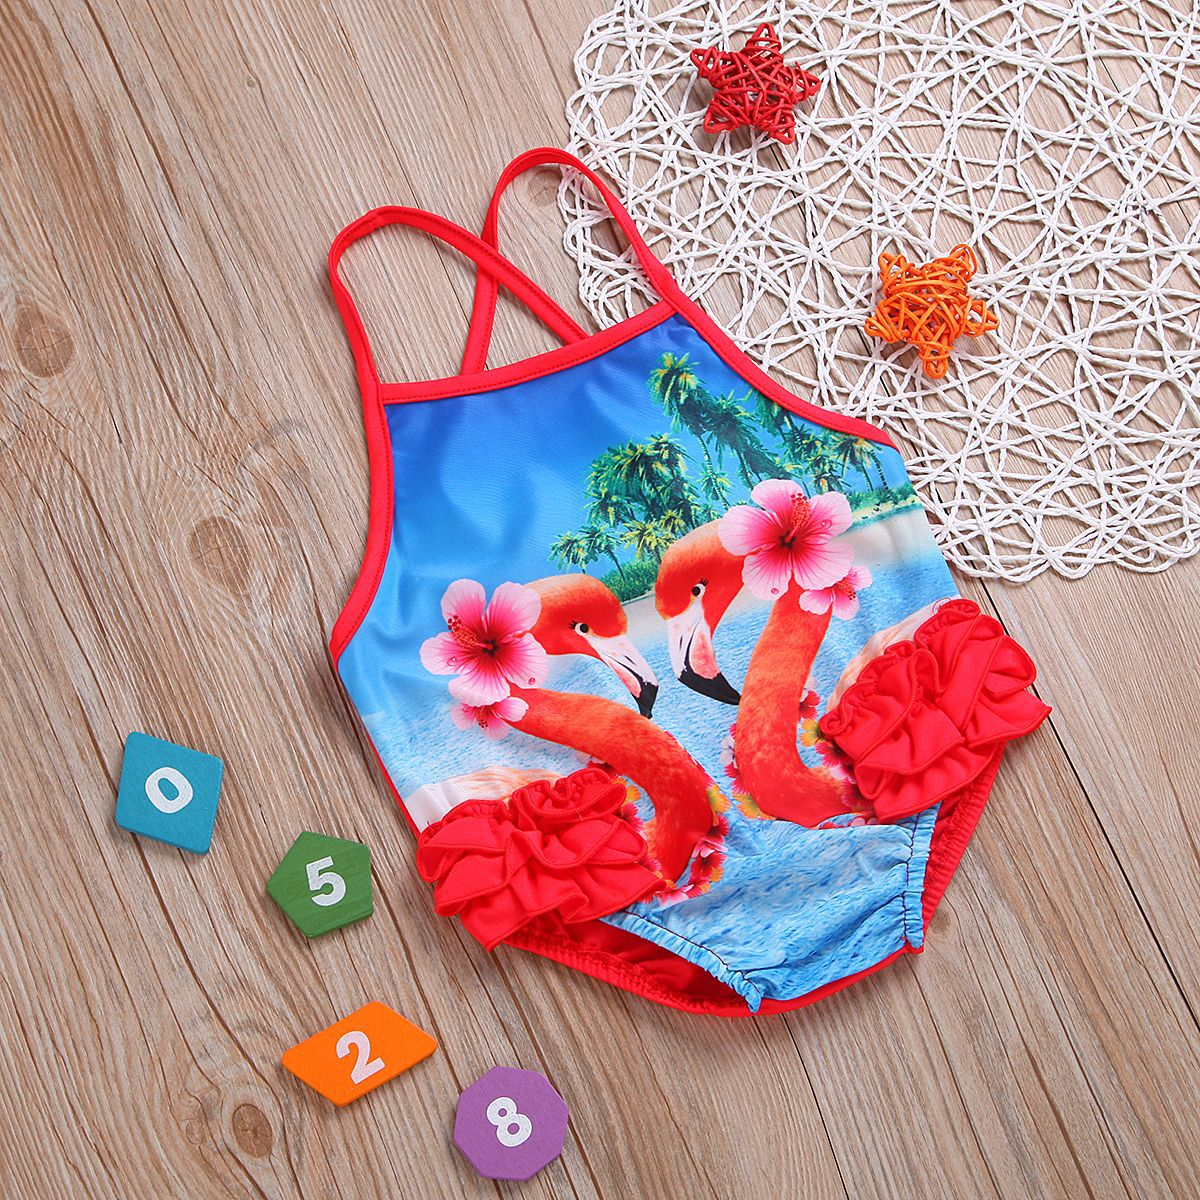 Summer New Style High Quality GIRL'S Swimsuit Camisole Western Style One-piece Hawaii Online Celebrity Flamingo Hot Selling